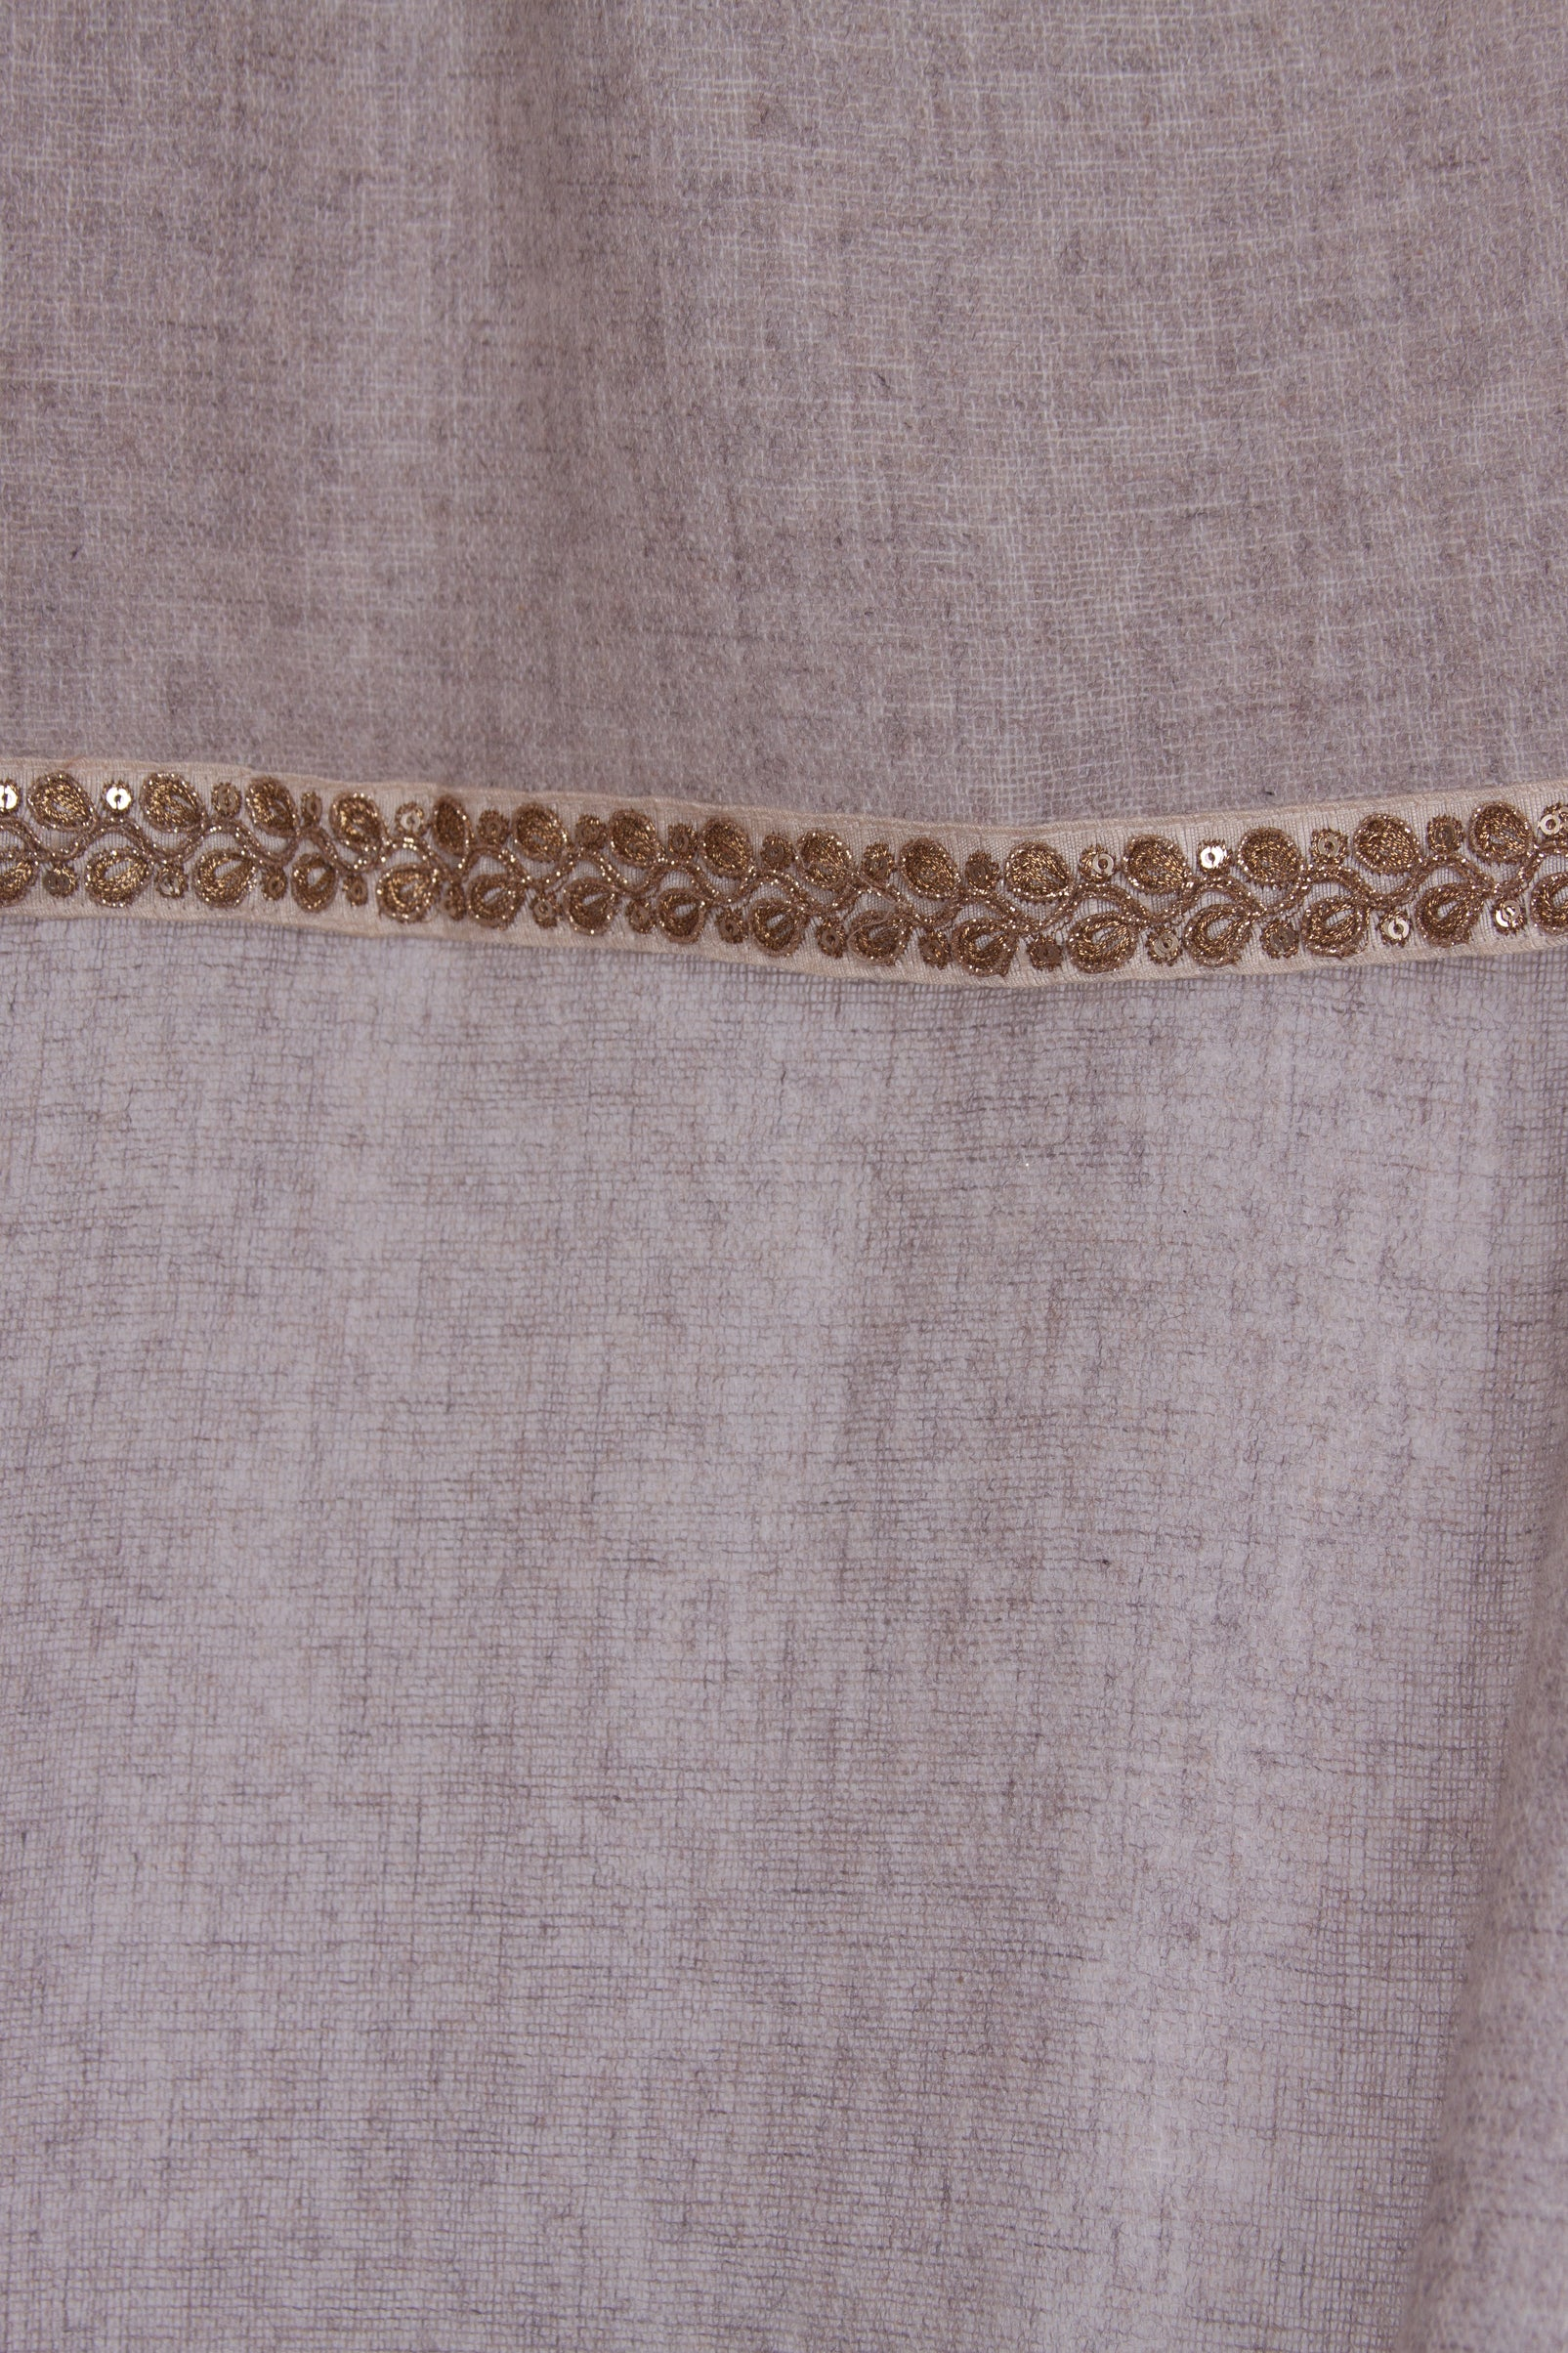 Woven Oatmeal Shawl with trim - La Lo La Clothing